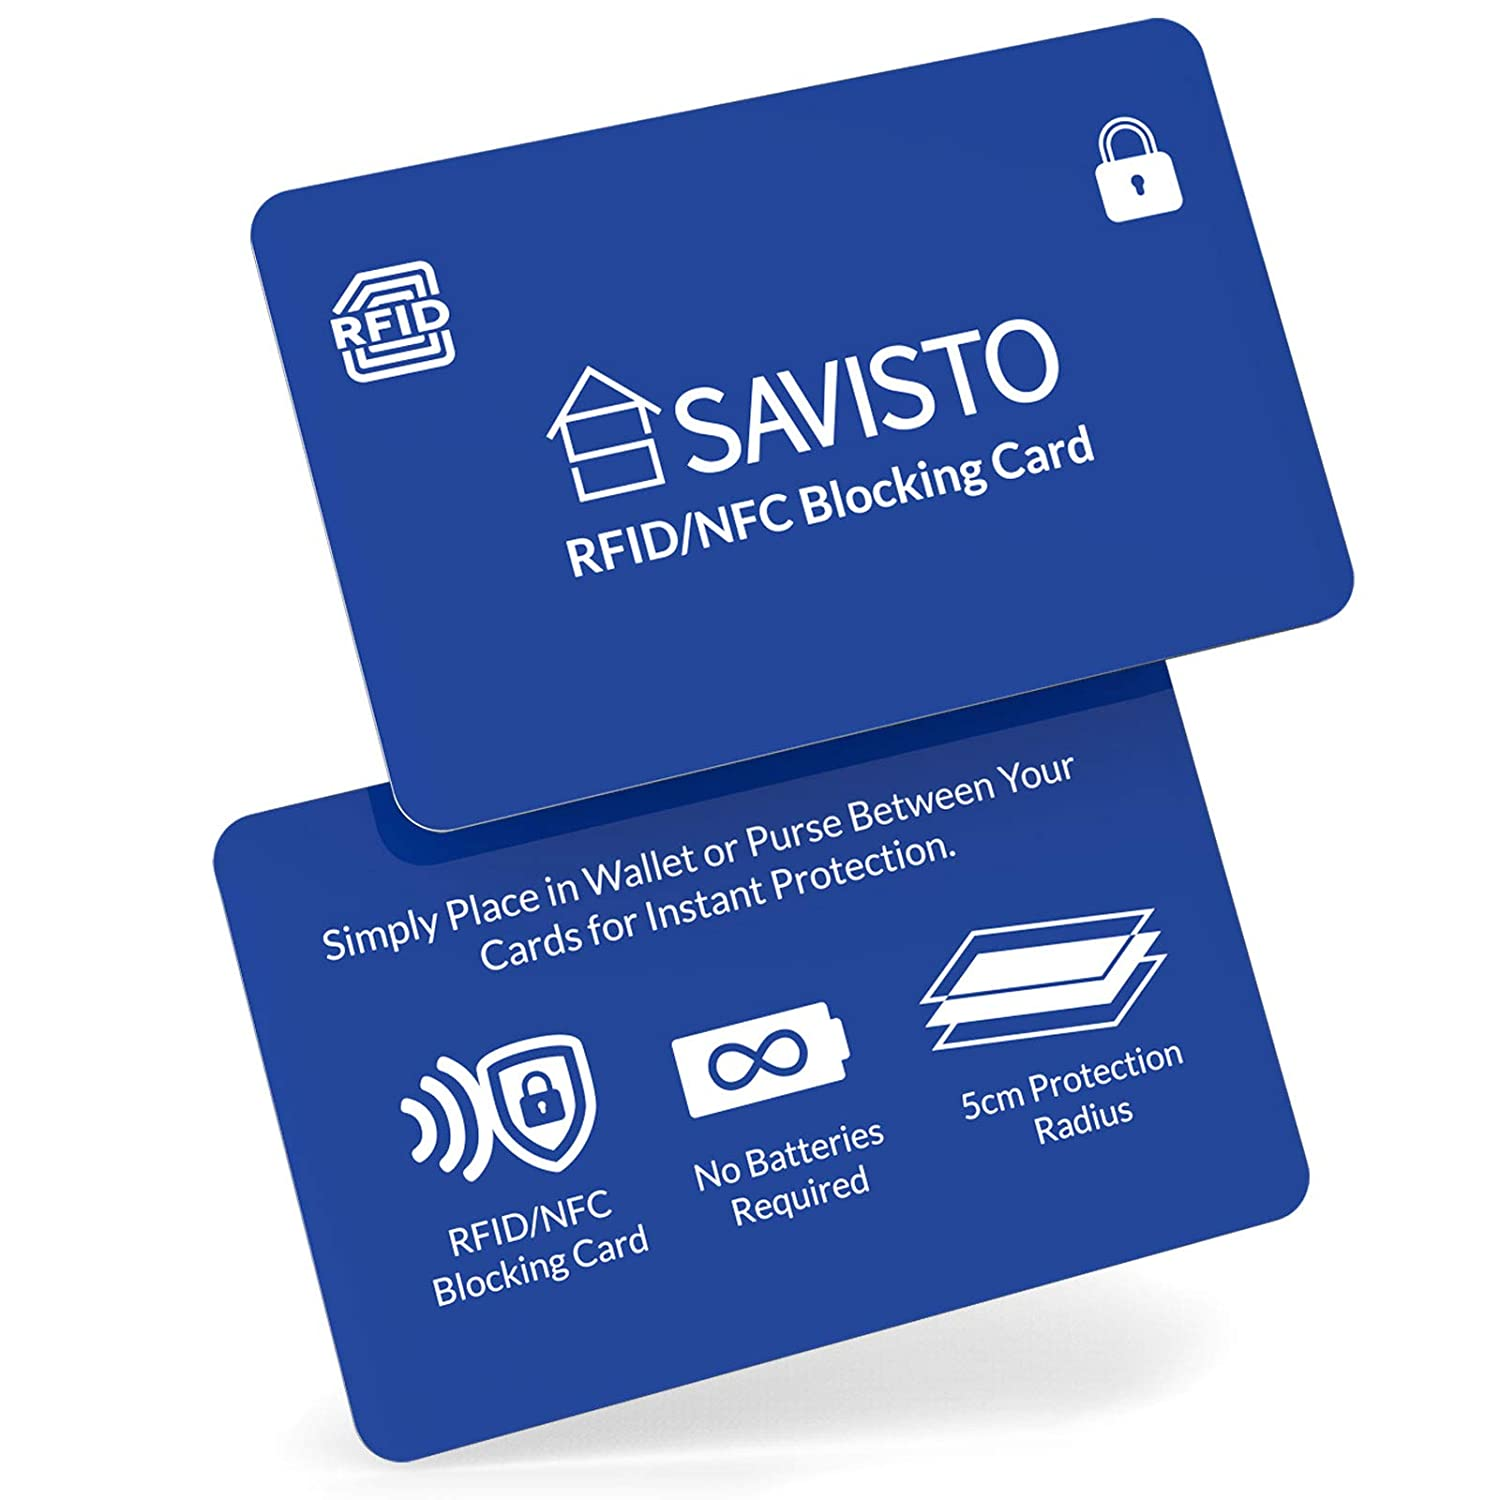 Savisto RFID Blocking Card, Single Pack | Anti-Theft RFID/NFC Card Protector Insert with Jamming Signal | Protects Contactless Cards, ID Cards, Car Keys & More - Black SV-HOUS-Z096